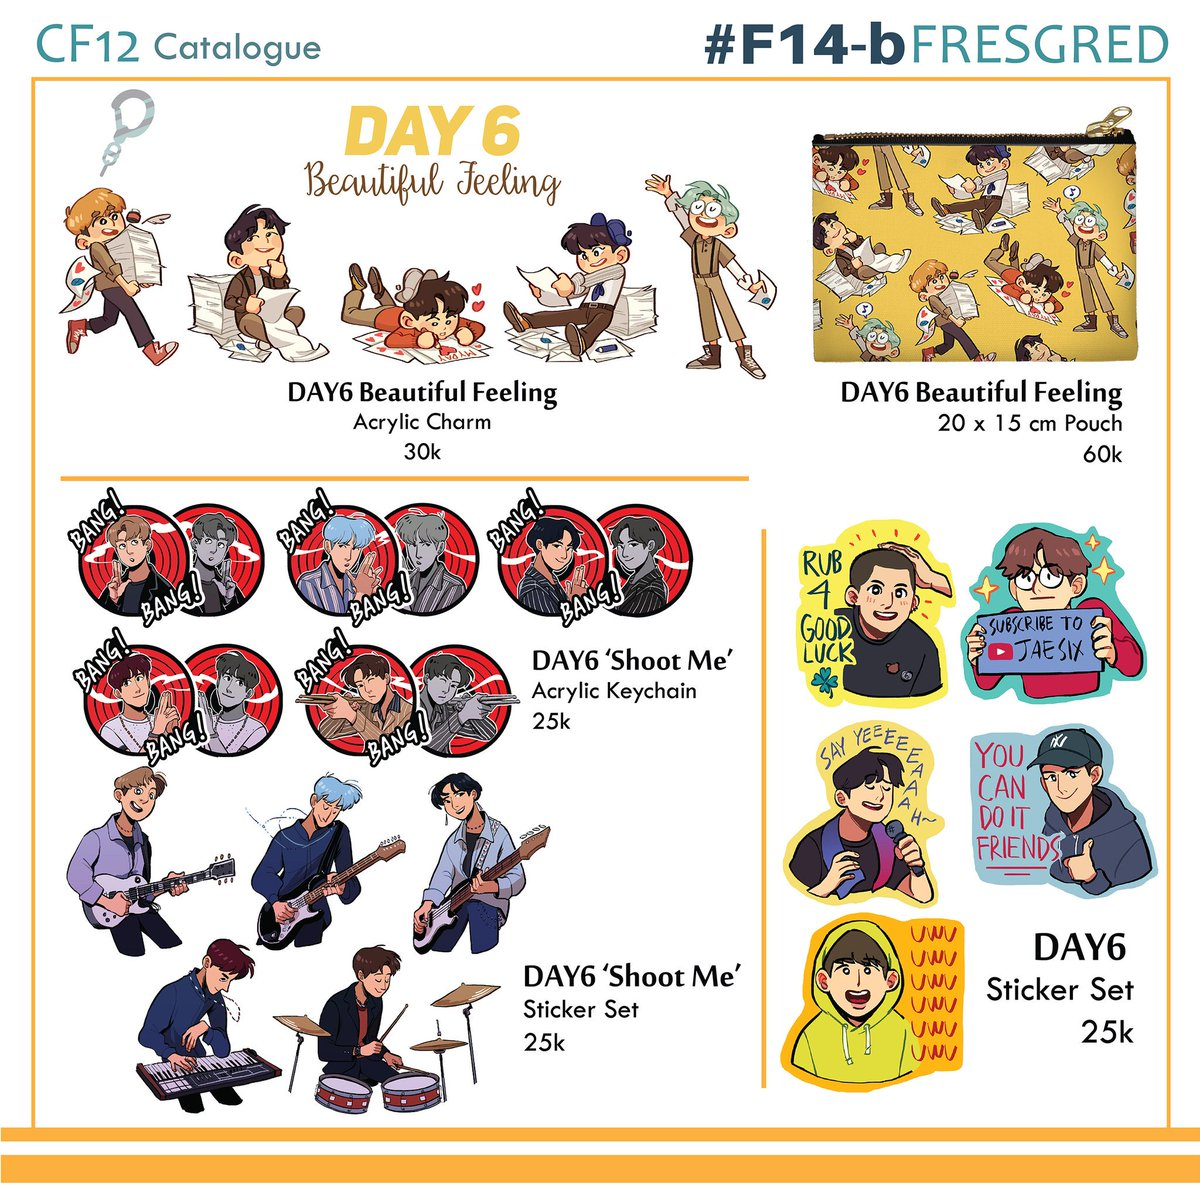 [RTs are appreciated 🌻] The catalog's out now!! Come to F14-b at #comifuro12 we are open for day 1 and 2! I'm not opening preorder bc of limited stock so get them fast!! 🌻🌻 #DAY6 #BNHA #Haikyuu